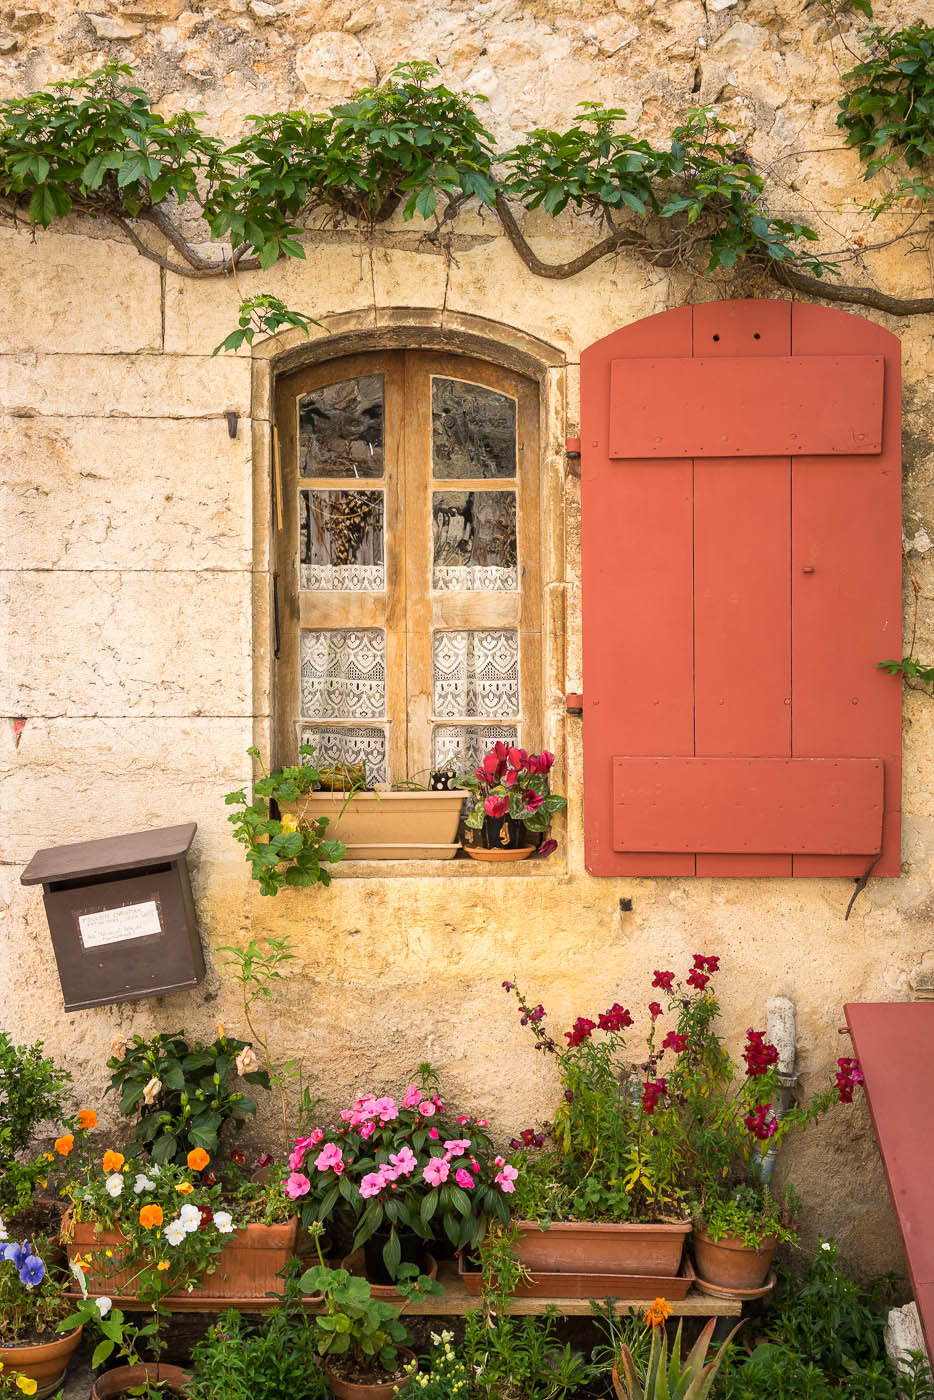 A dangling wooden mailbox on a very beautiful stone wall with flowers in Provence